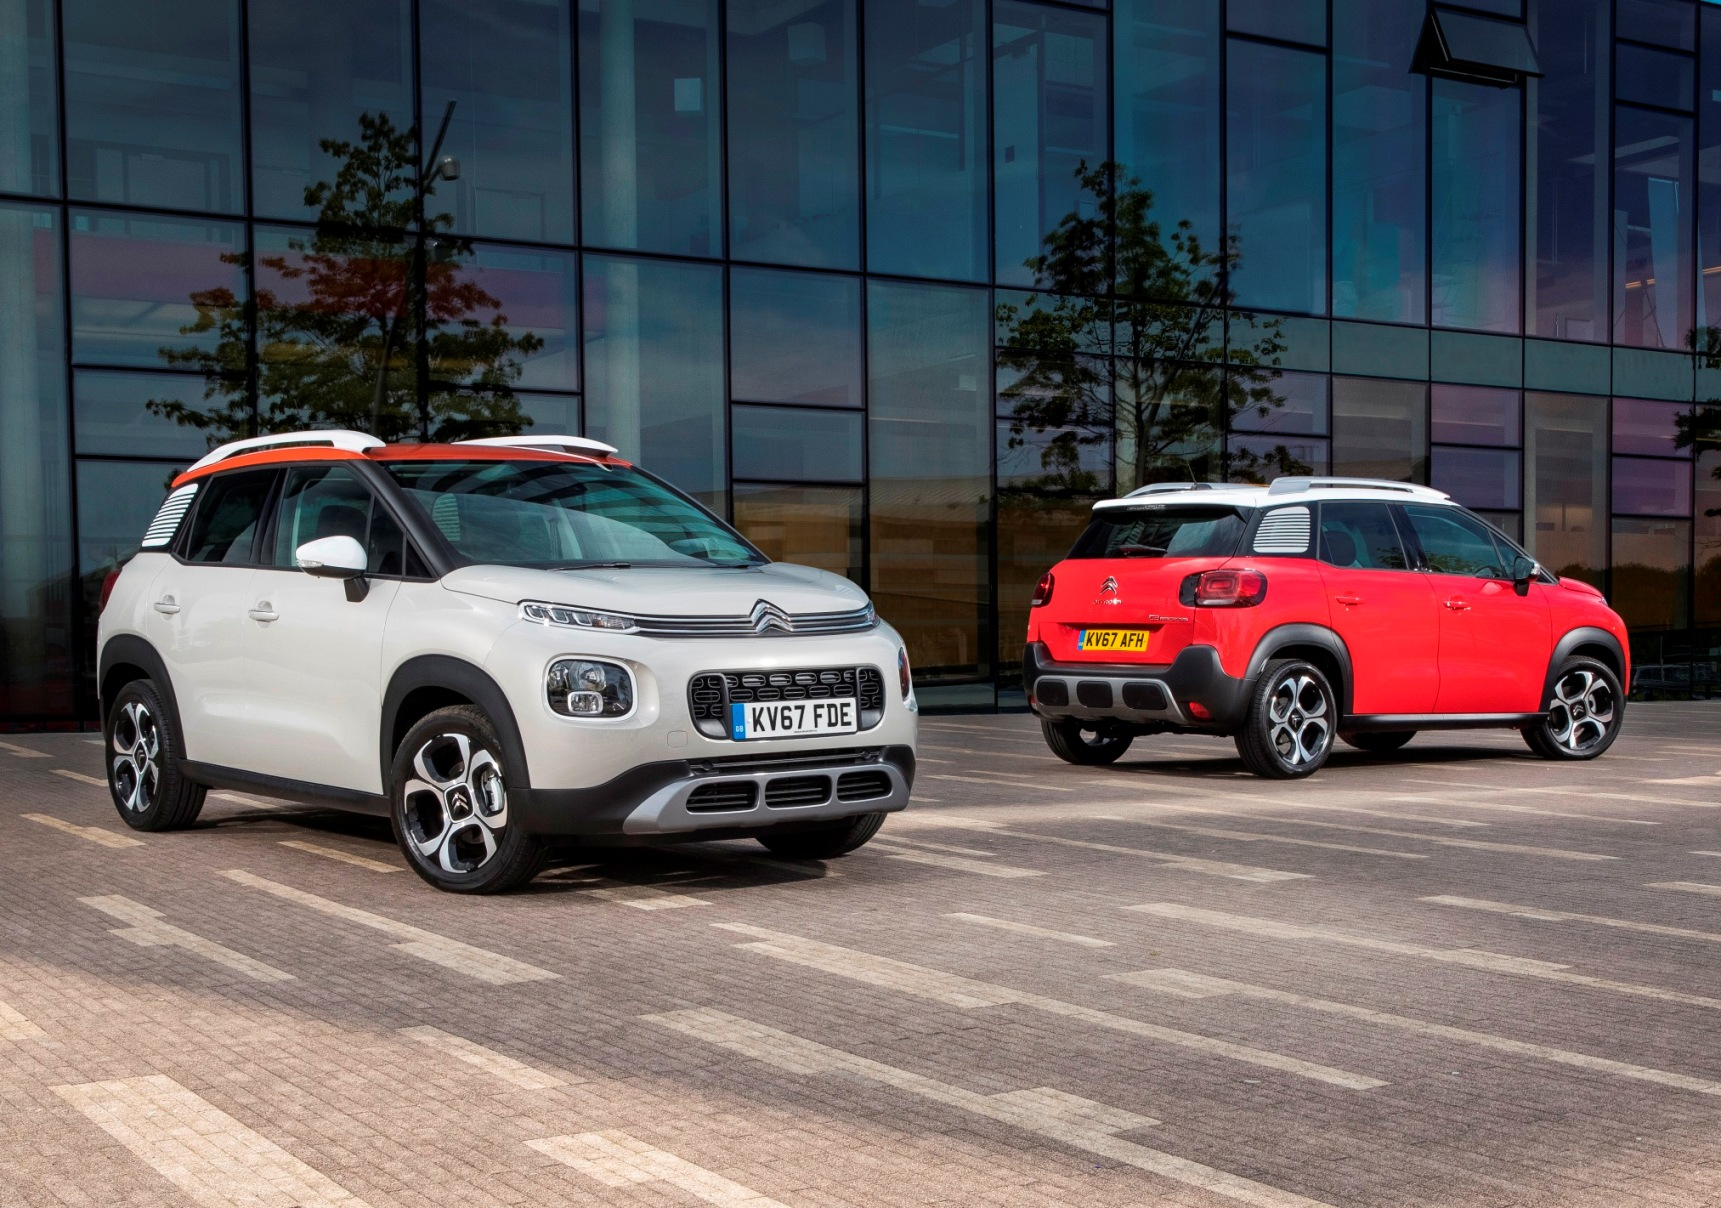 Citroën news and latest C3 Aircross First Impressions – Wheels Alive